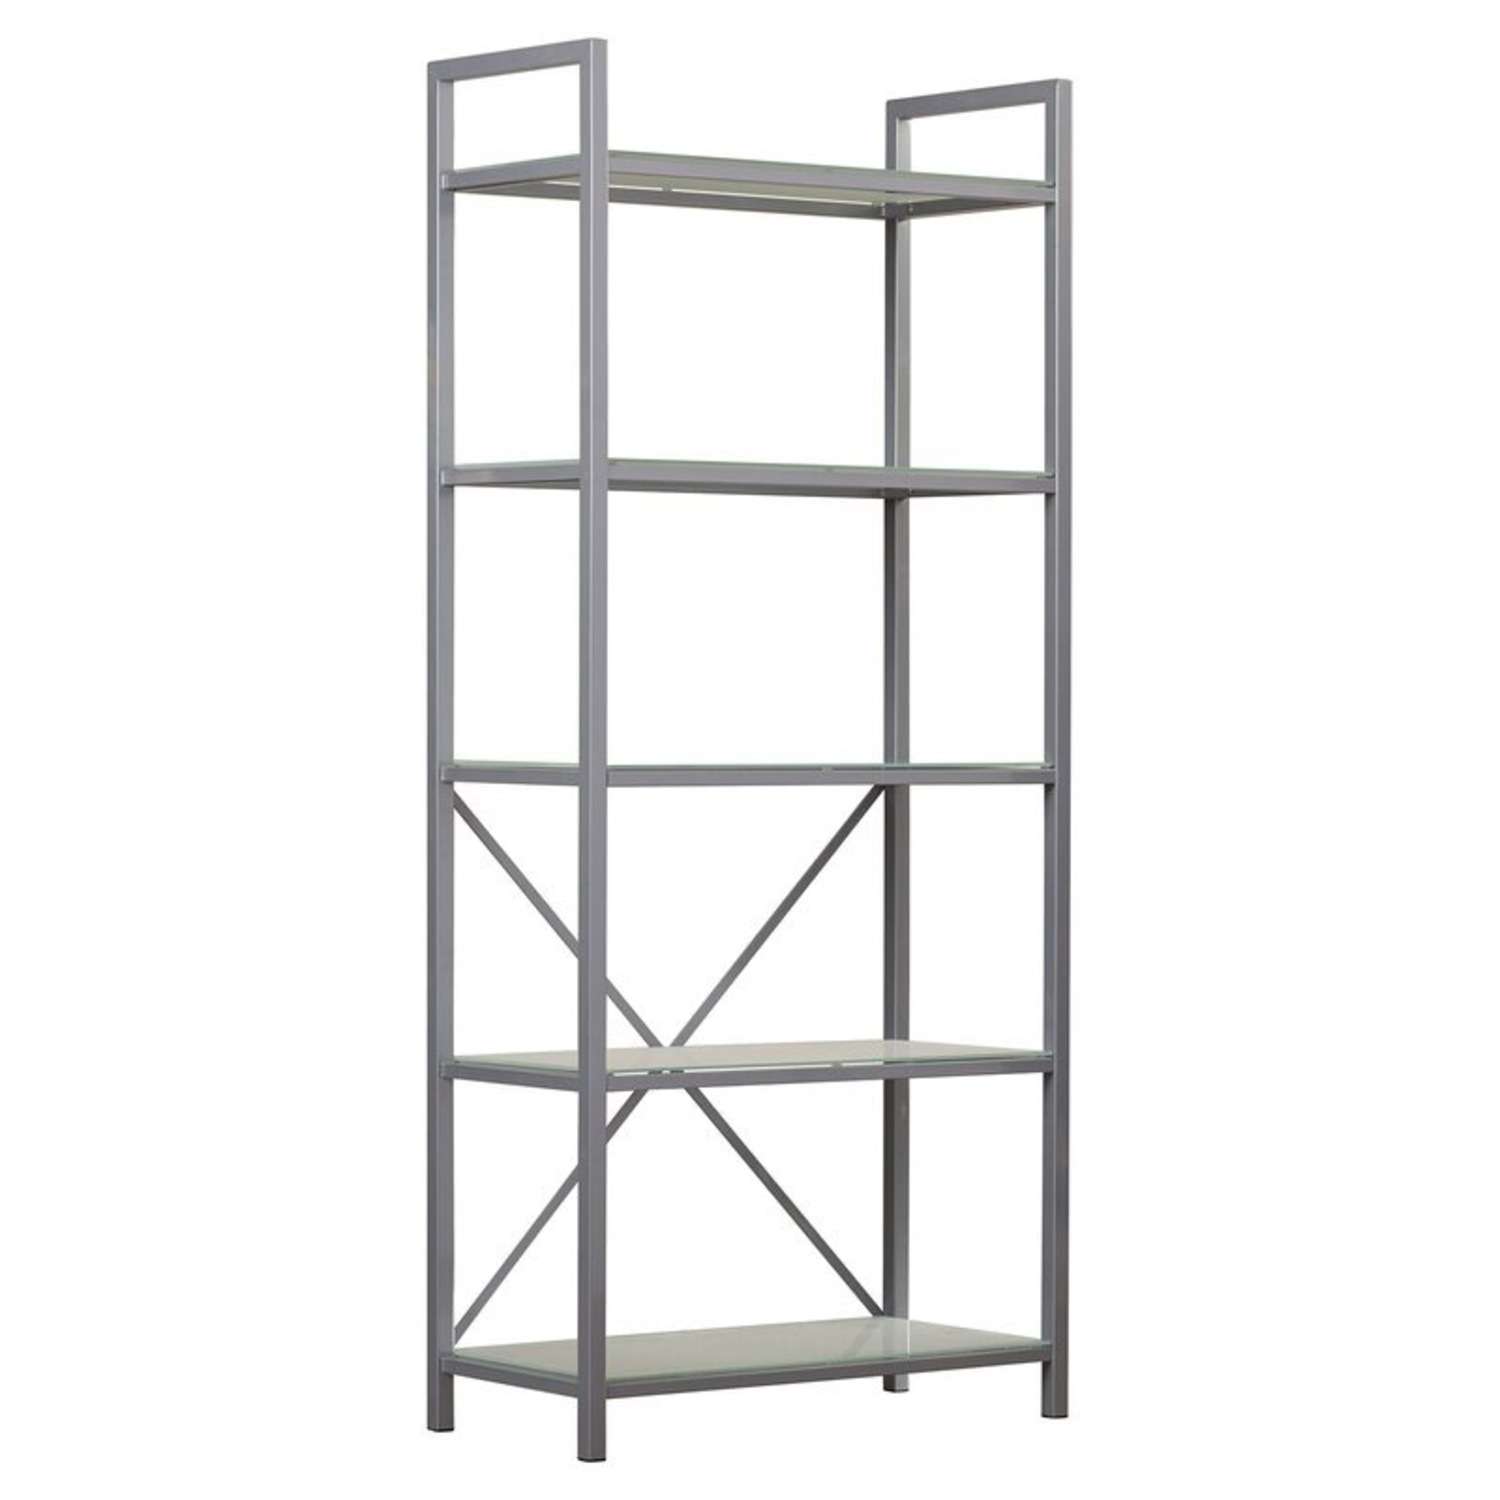 Pair of Wayfair Silver Bookcases - image-0